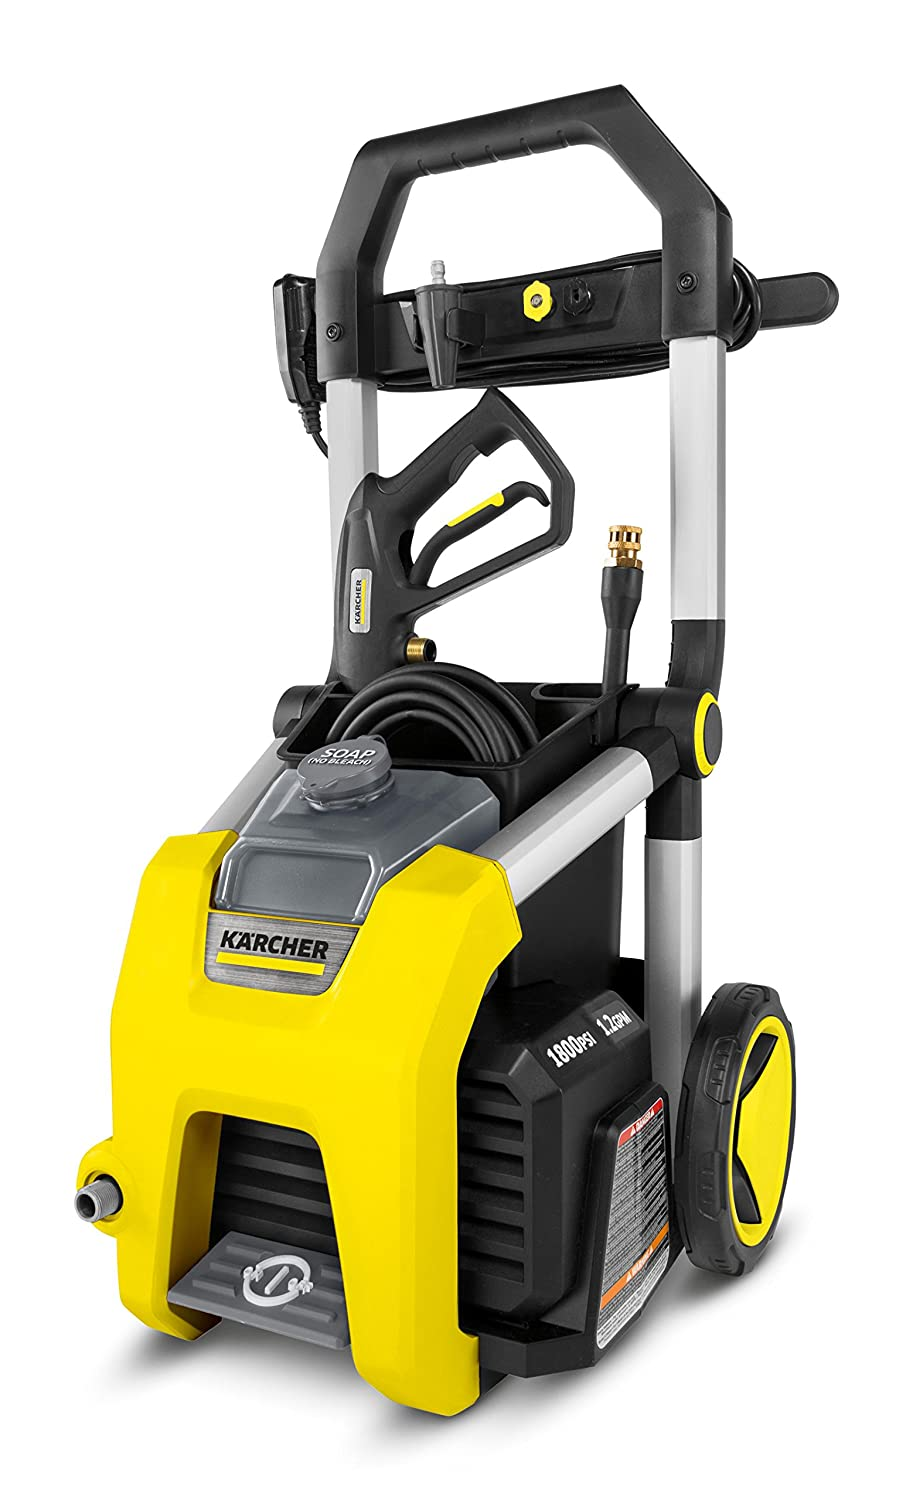 Part Catalog Karcher 1700 B Wiring Library Seriel Kohler Diagram Engine Loq0467j0394 Amazoncom K1800 Electric Power Pressure Washer 1800 Psi Trupressure 3